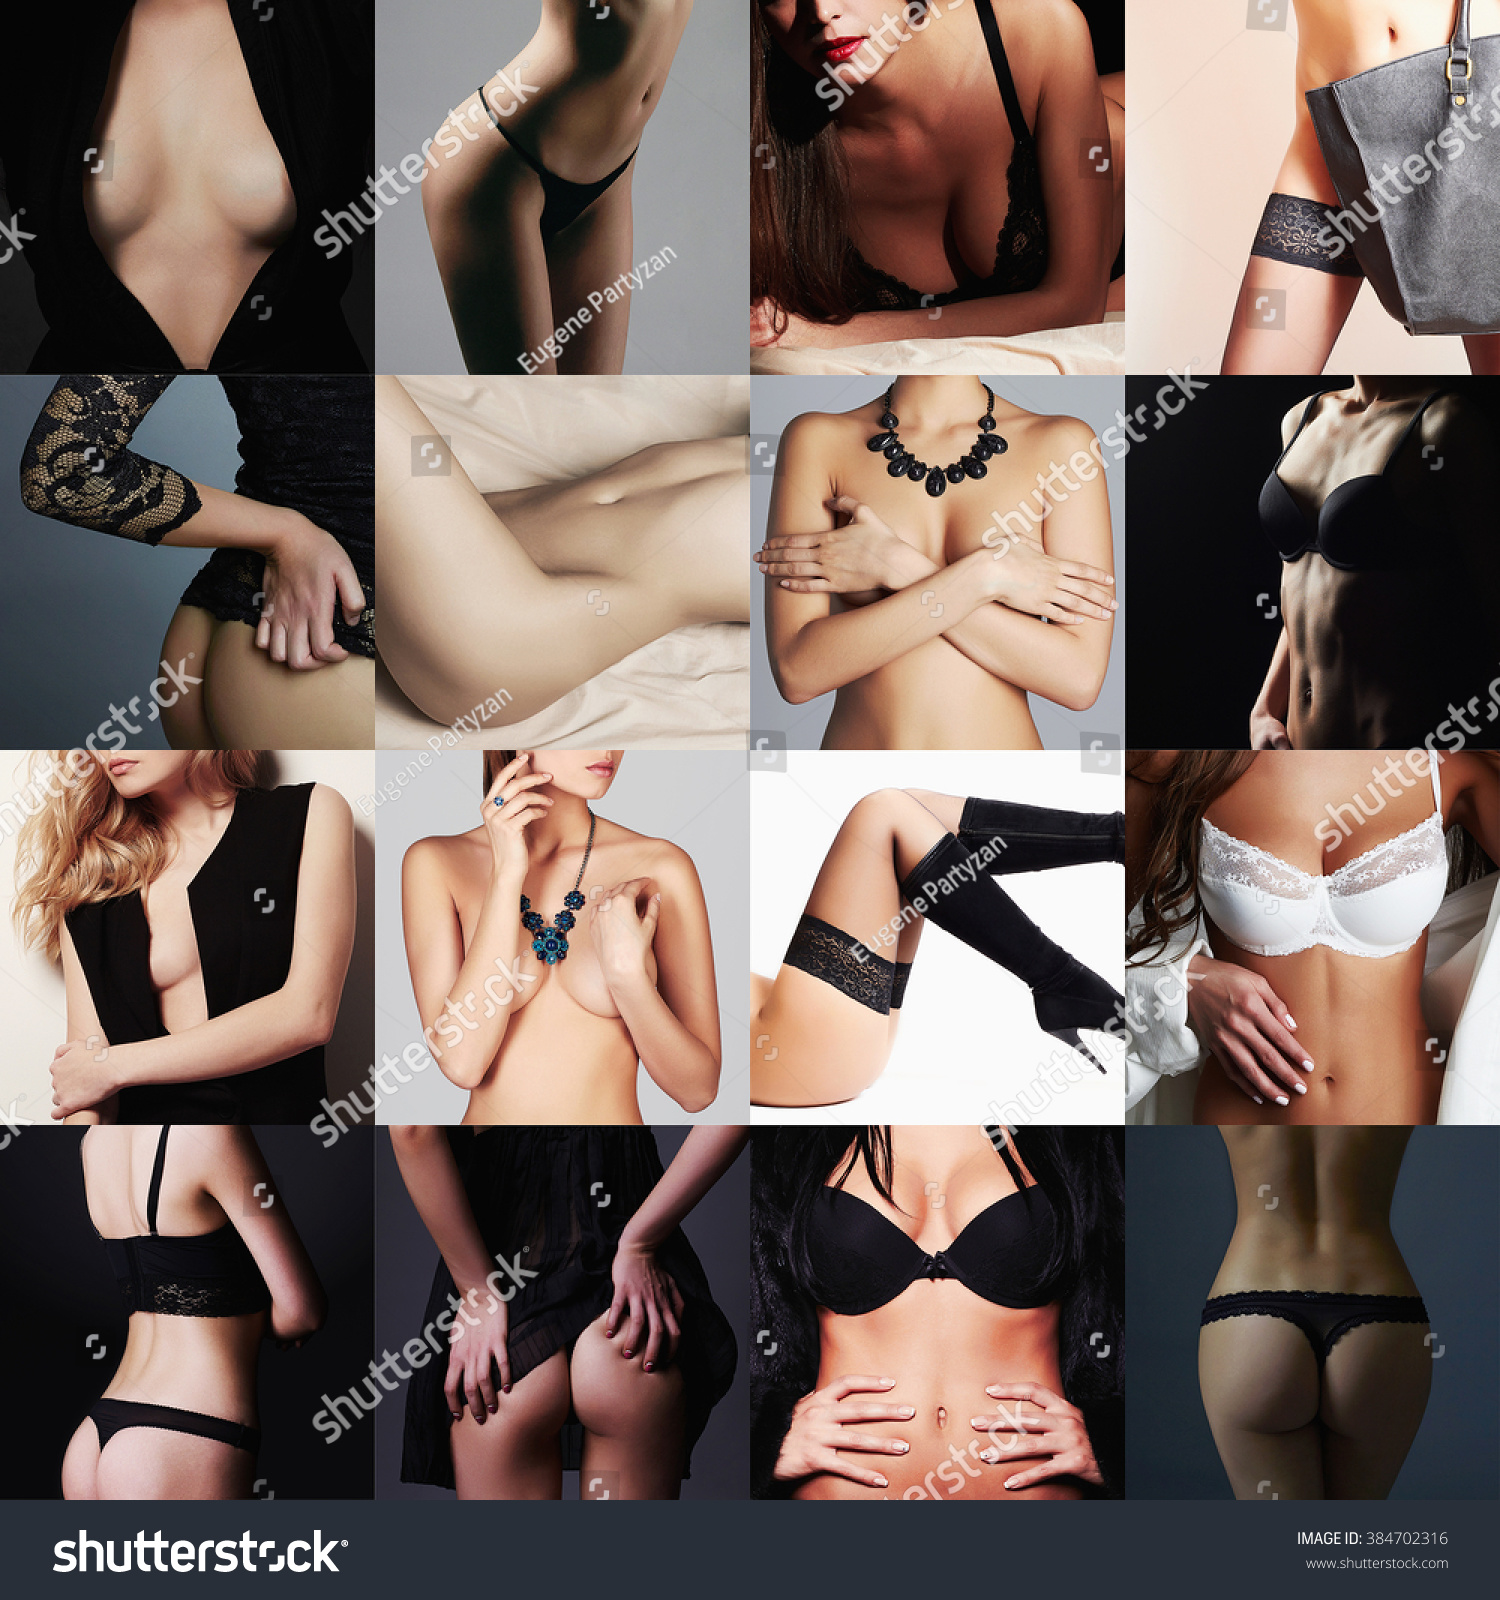 from Axel naked girls are collage